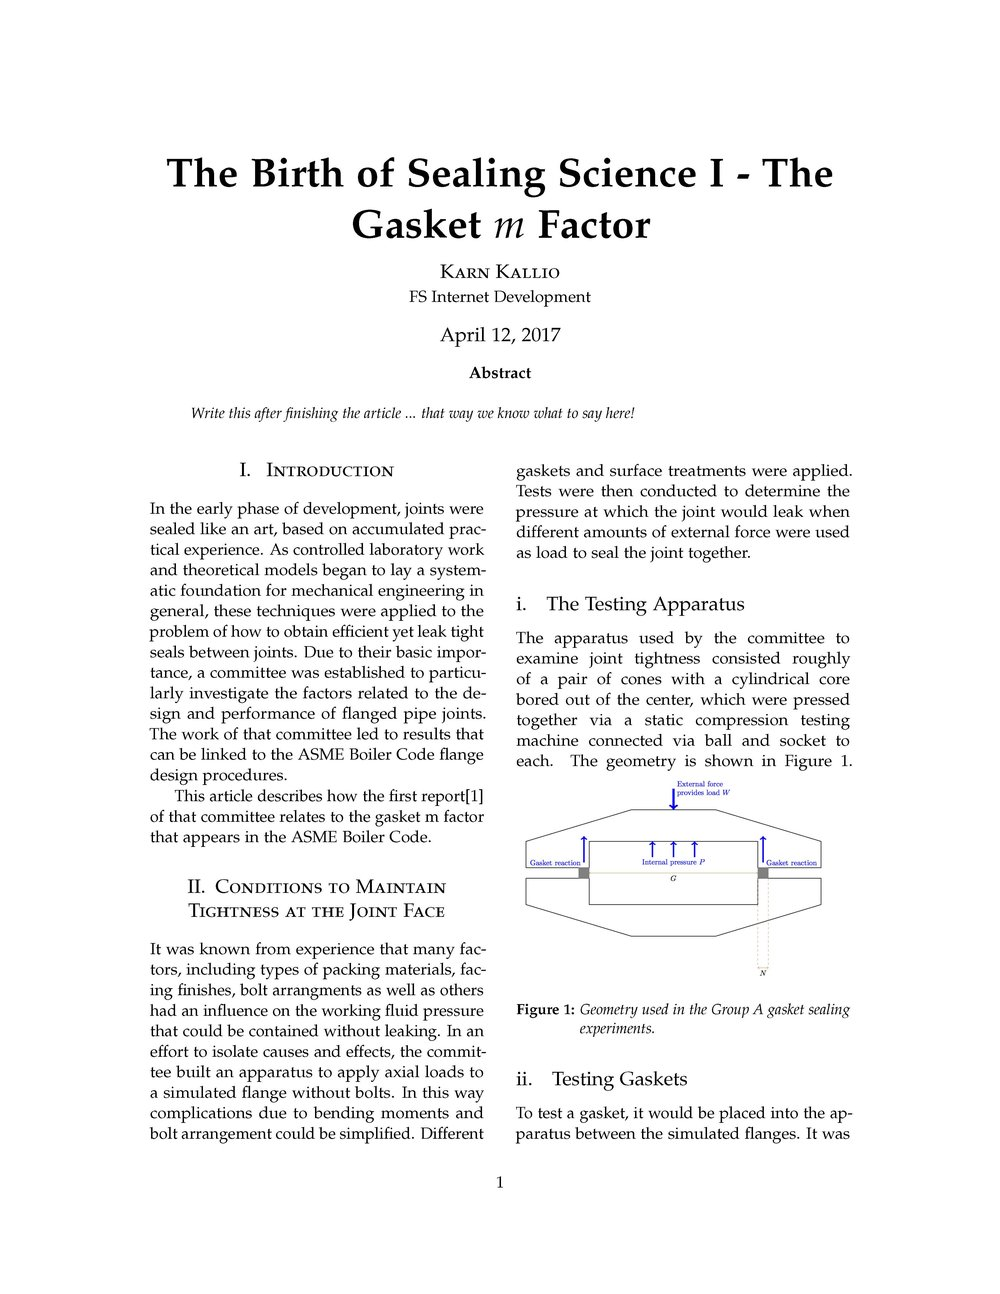 Birth of a Sealing Science I_Page_01.jpg